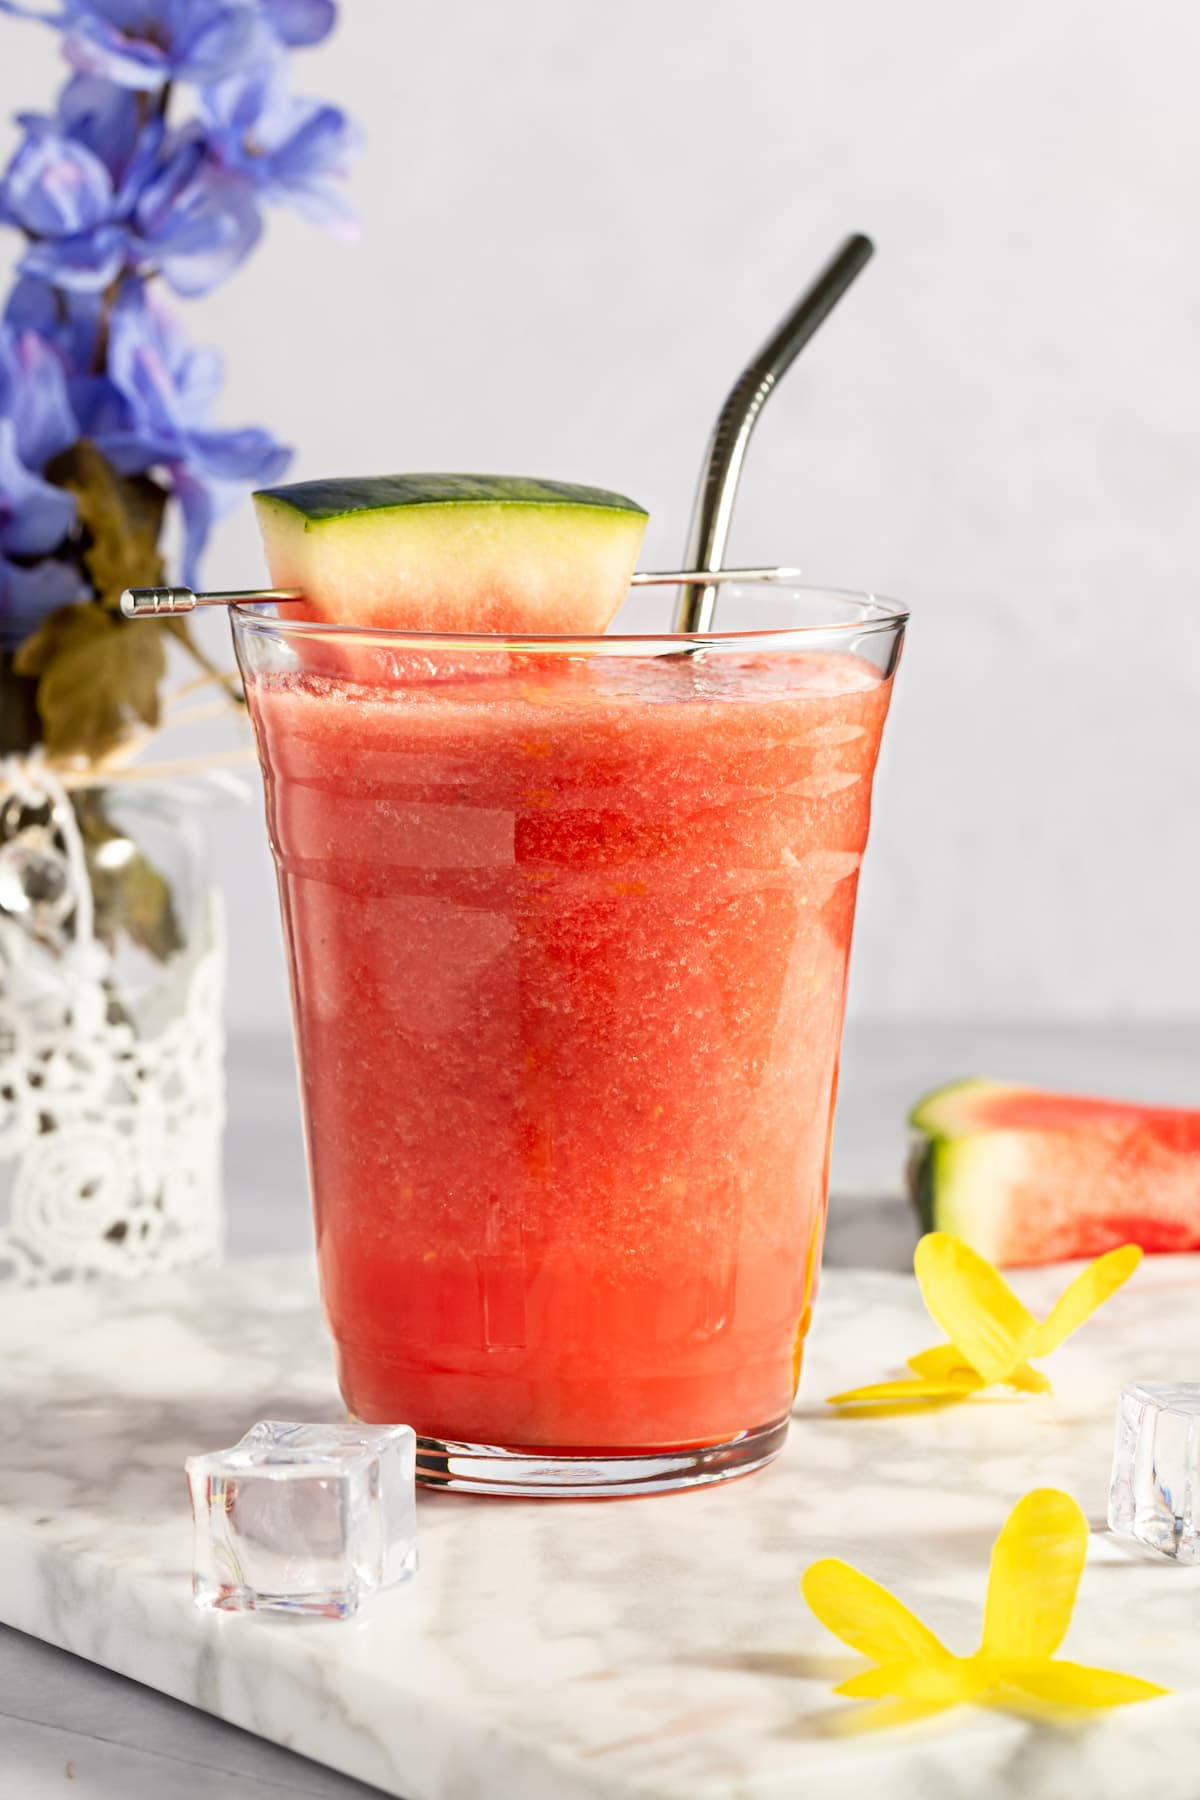 Up close photo of a watermelon and pineapple smoothie with ice cubes and yellow flowers scattered around and a vase in the background.